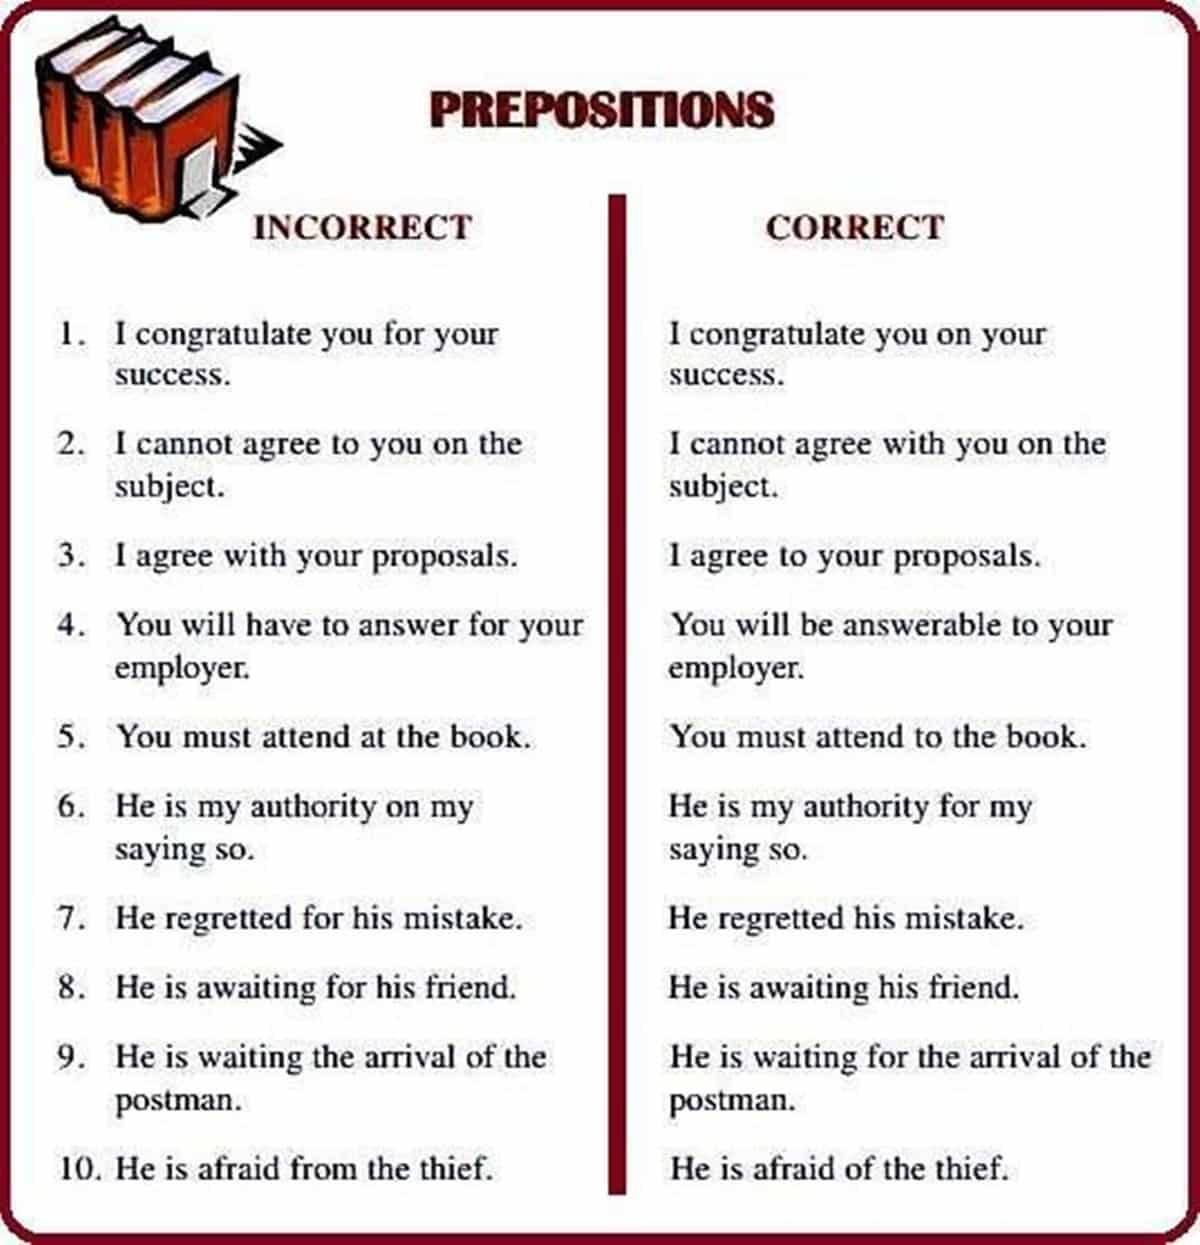 common mistakes in english Improve your grammar by correcting the common mistakes in these english sentences a good review for all students, especially at intermediate and advanced levels.